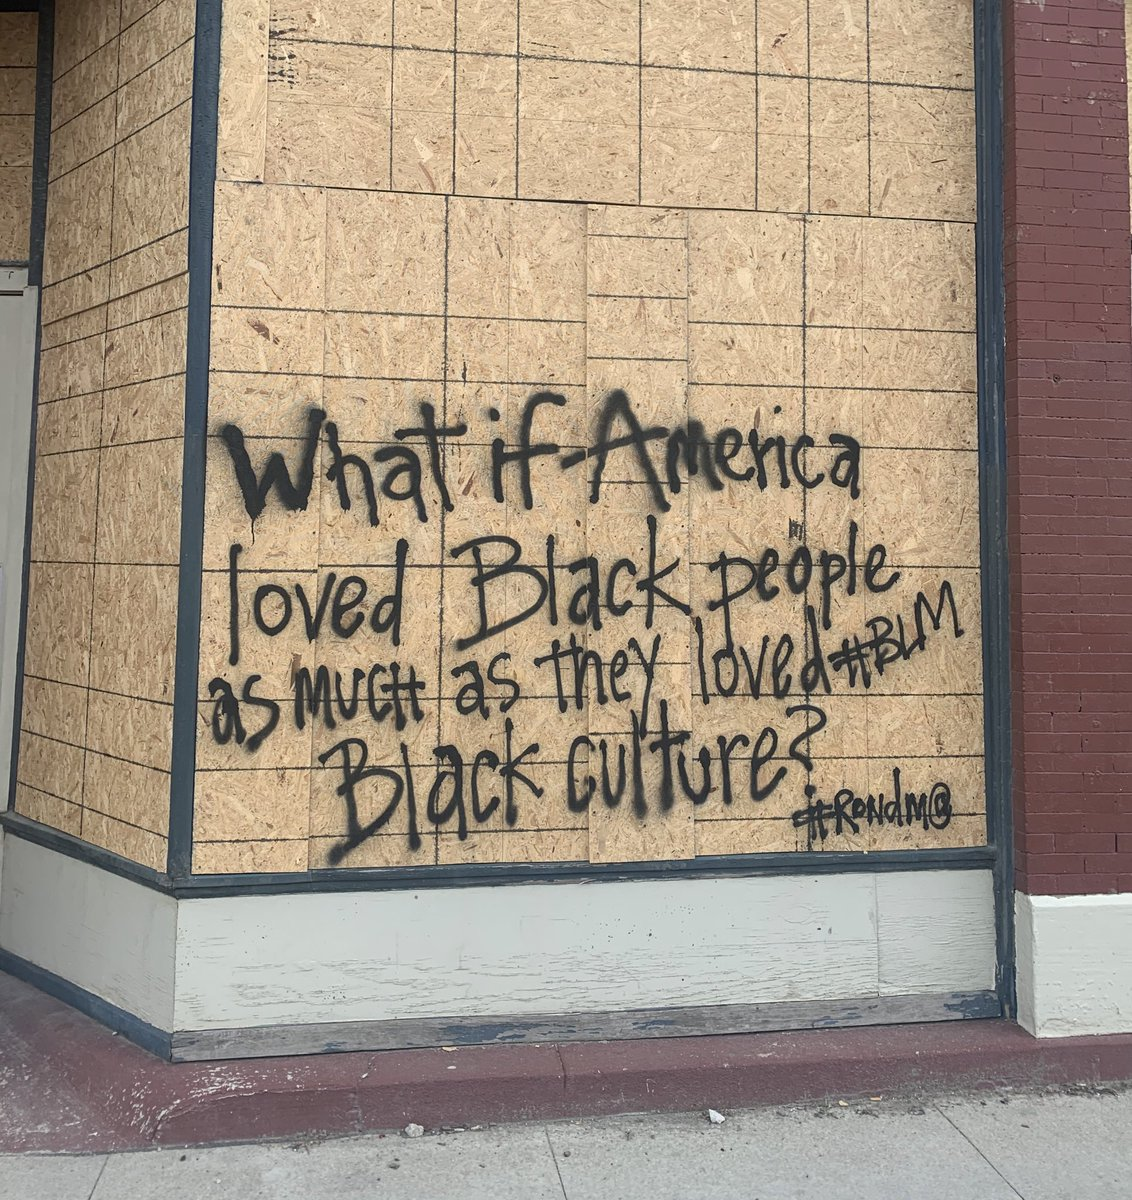 """What if America loved Black people as much as they loved Black culture?"""